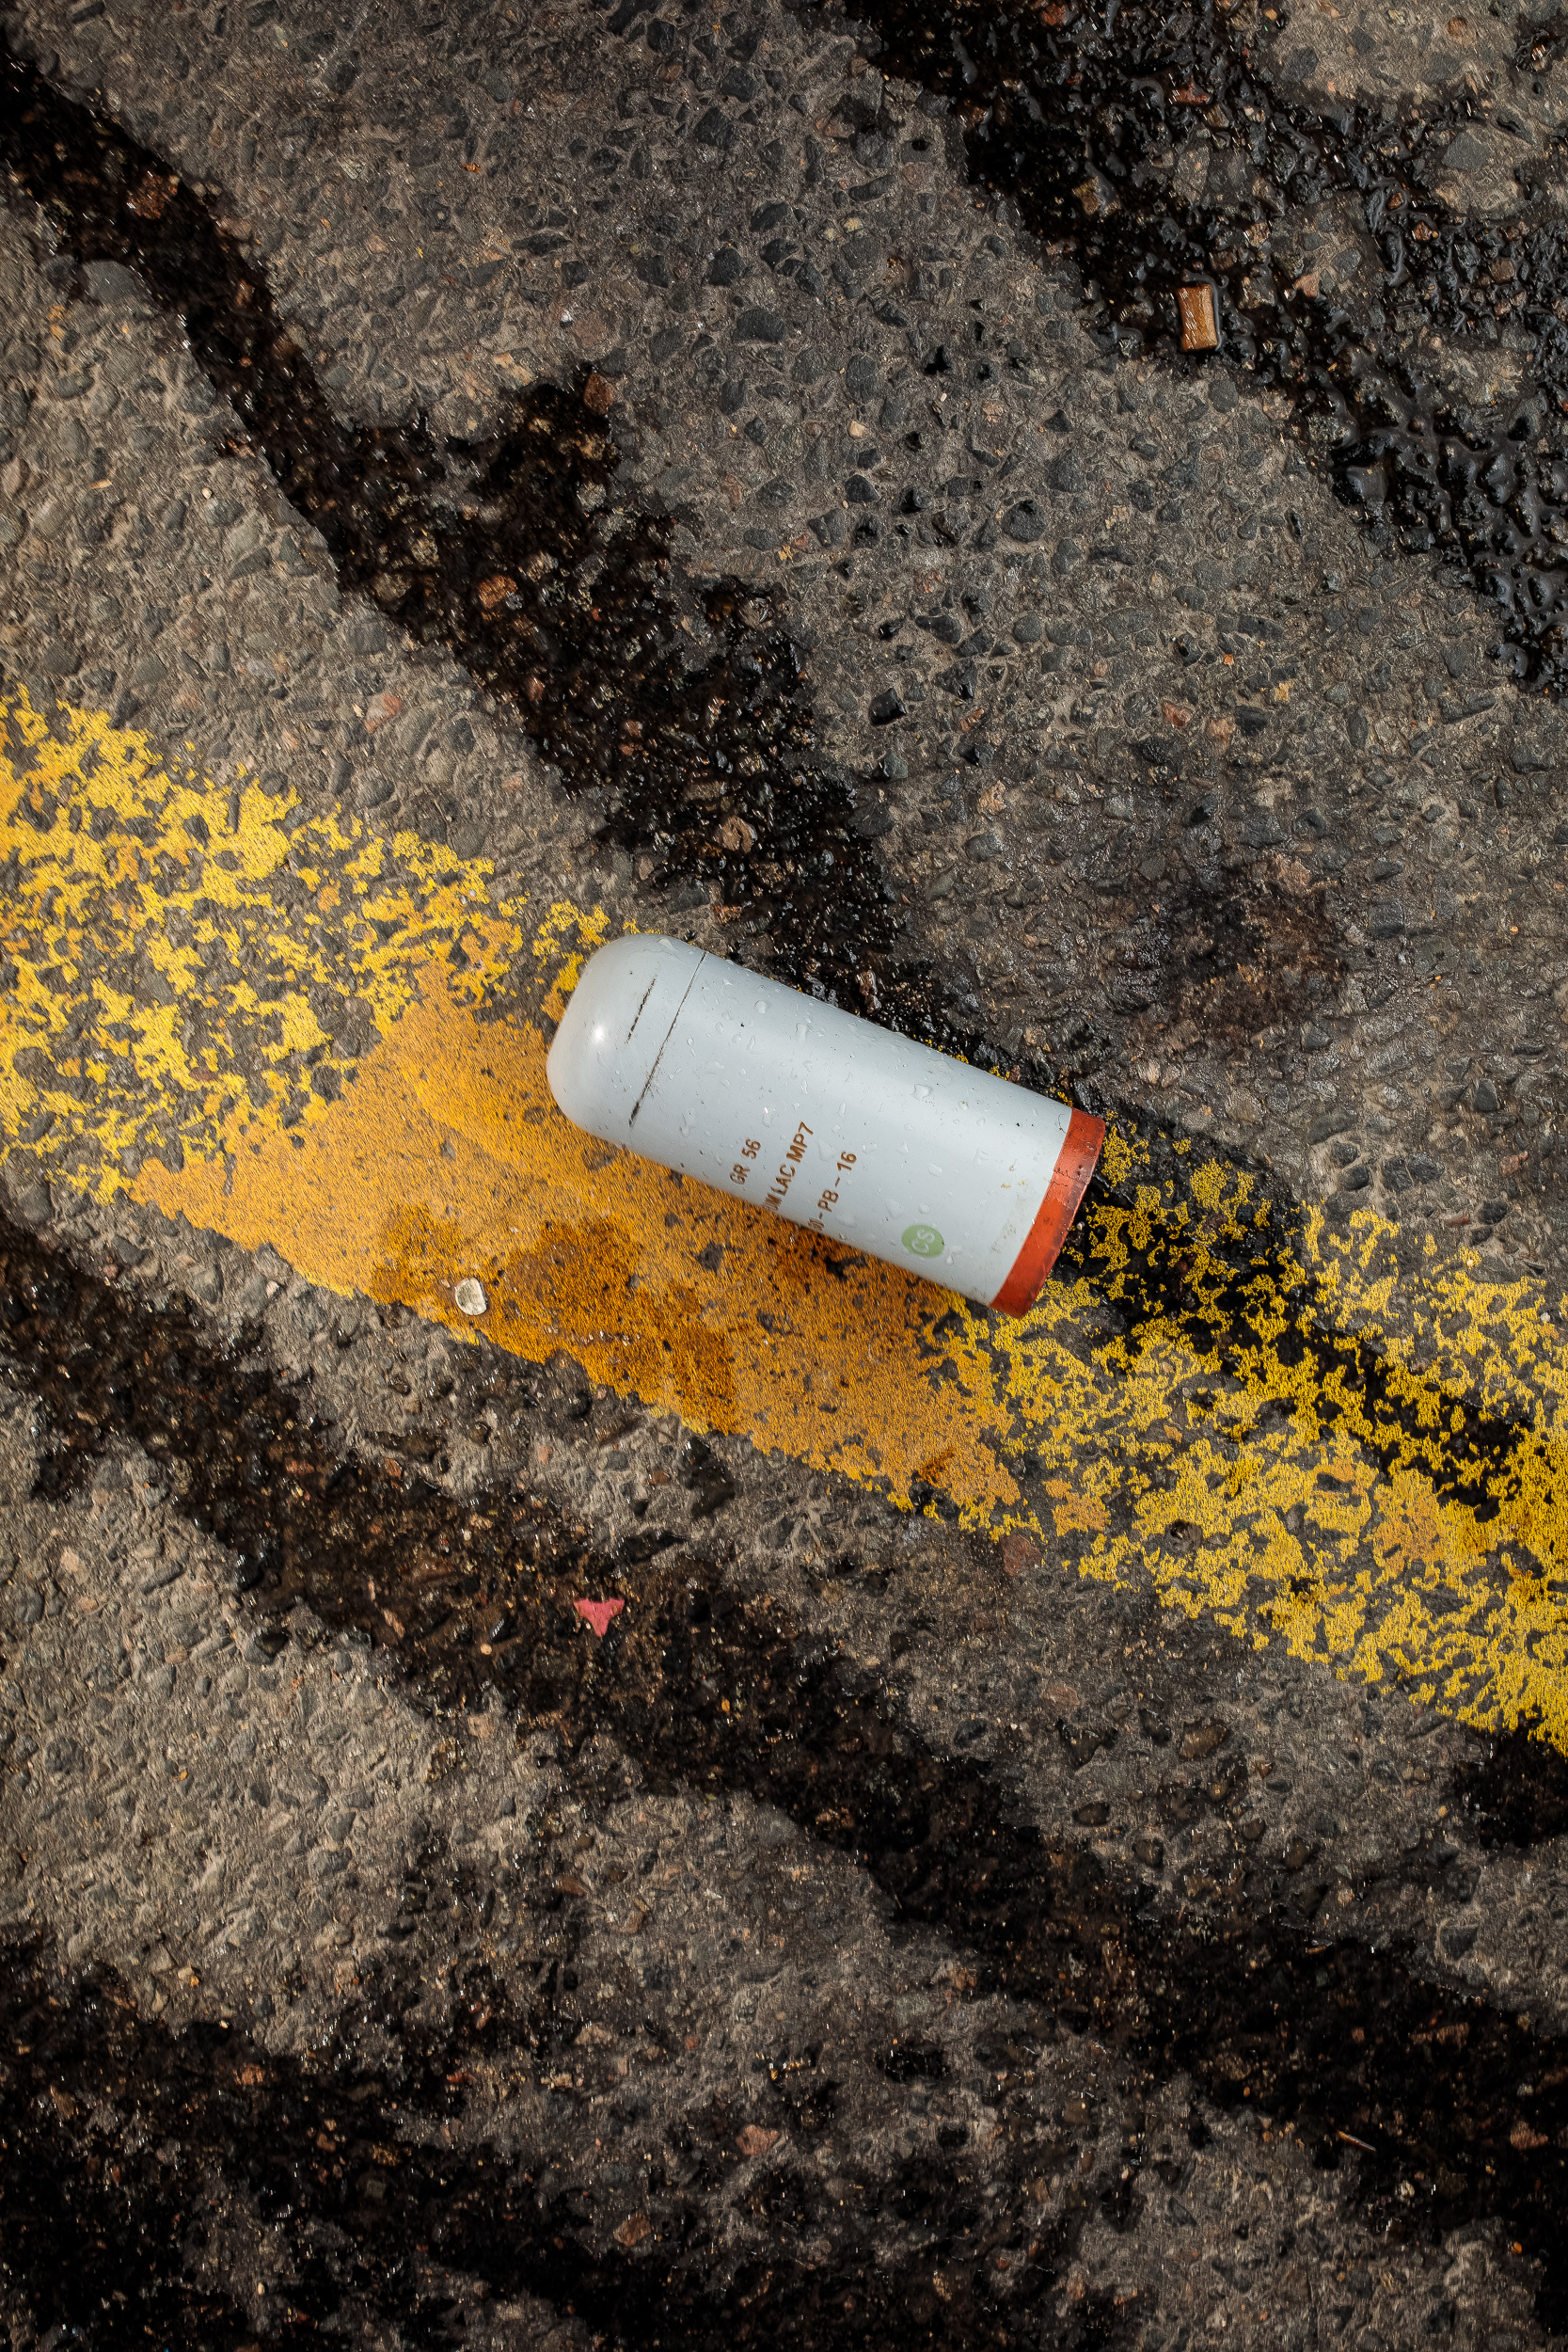 Tear gas canister and water cannon remnants, 2018